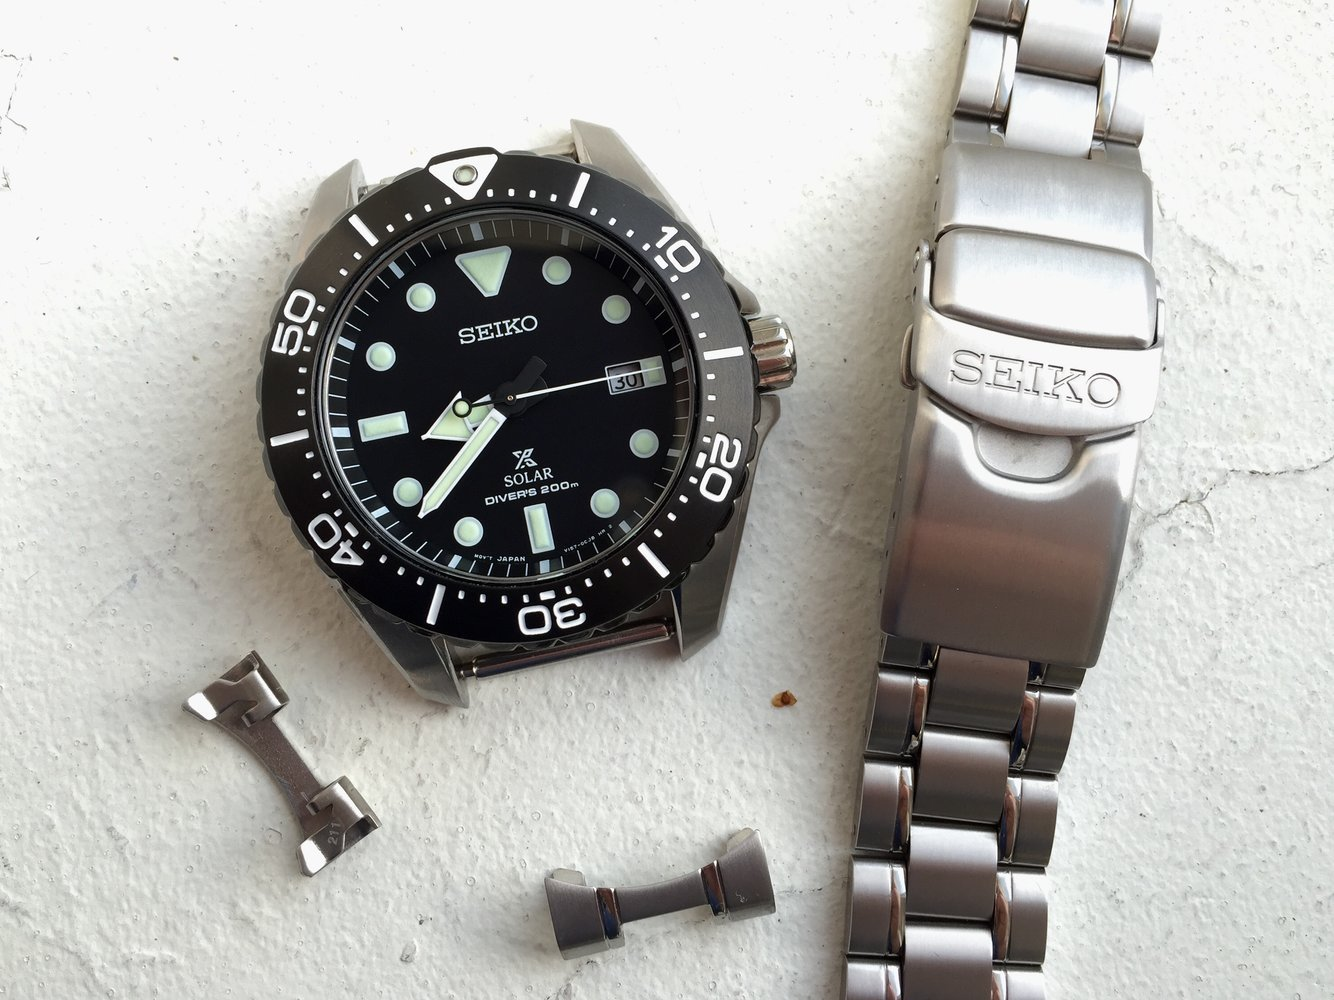 NEW and UPCOMING Seiko watches** - Page 269